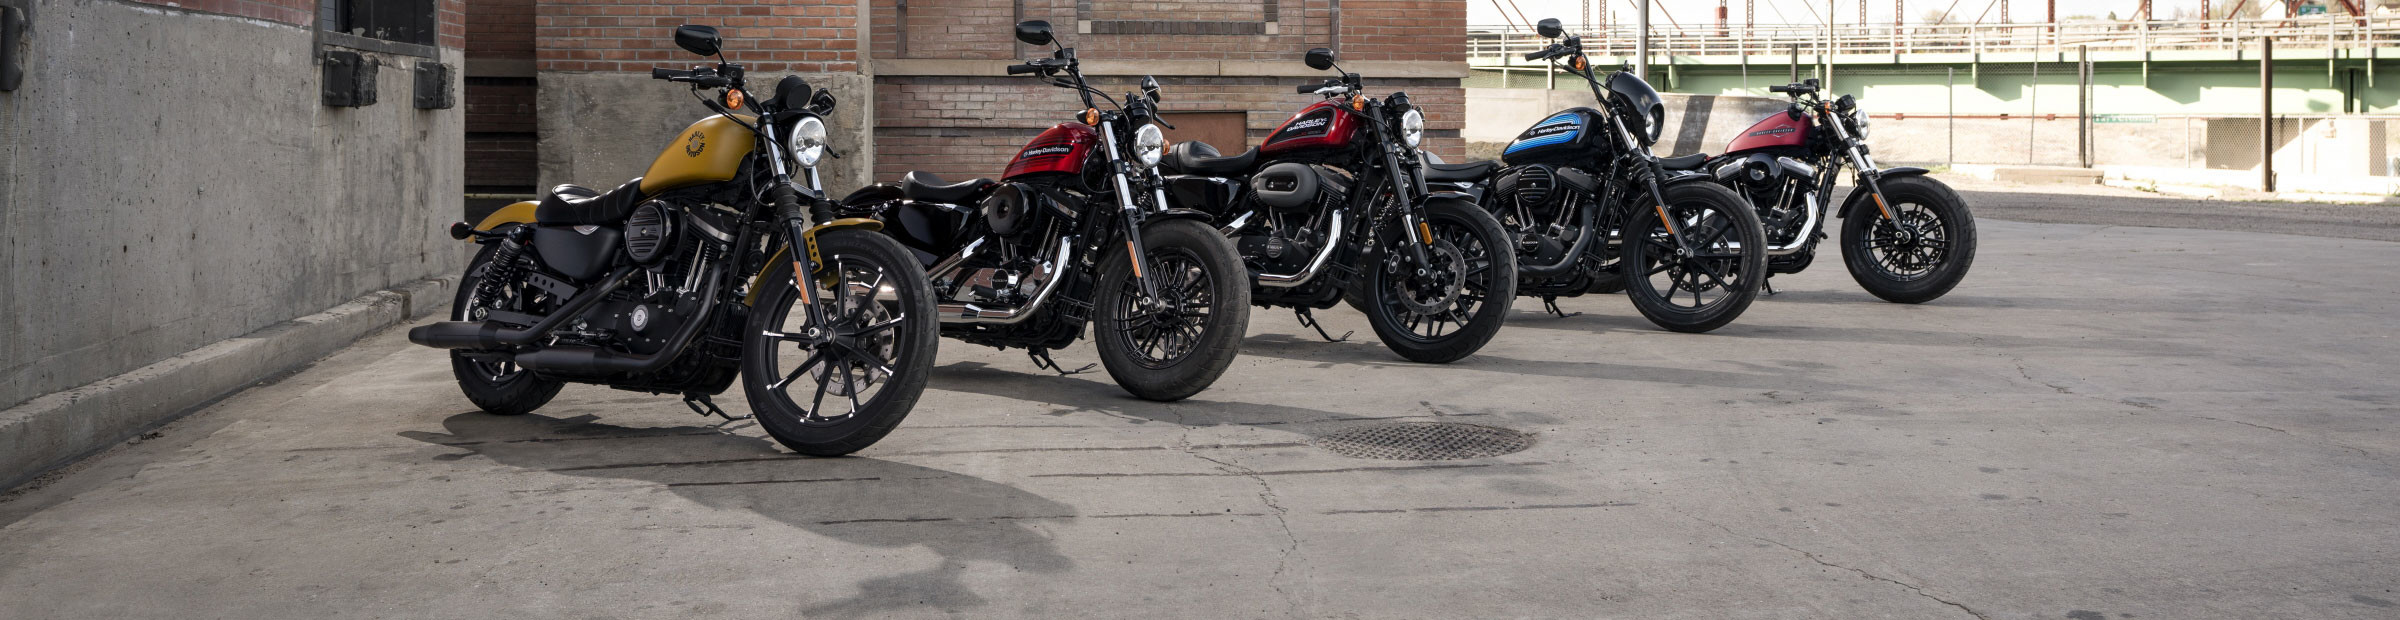 Trade-In Your Ride at Harley-Davidson® of Madison!